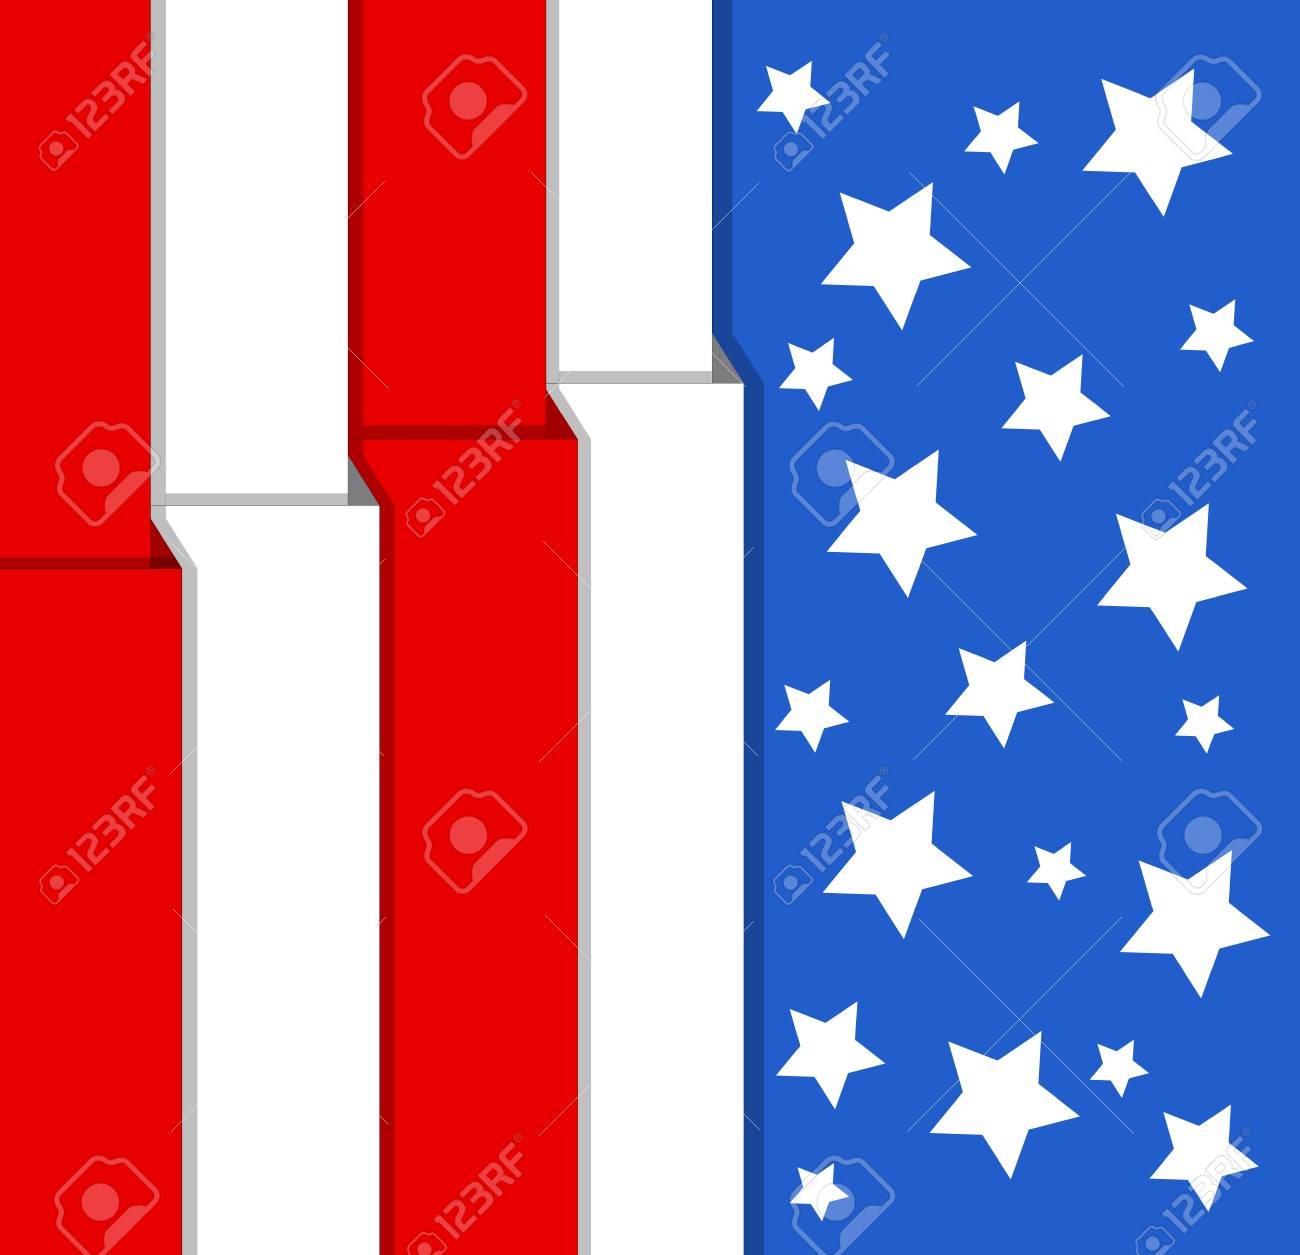 flag - US 4th of July - Independence Day Vector Design Stock Vector - 22318301